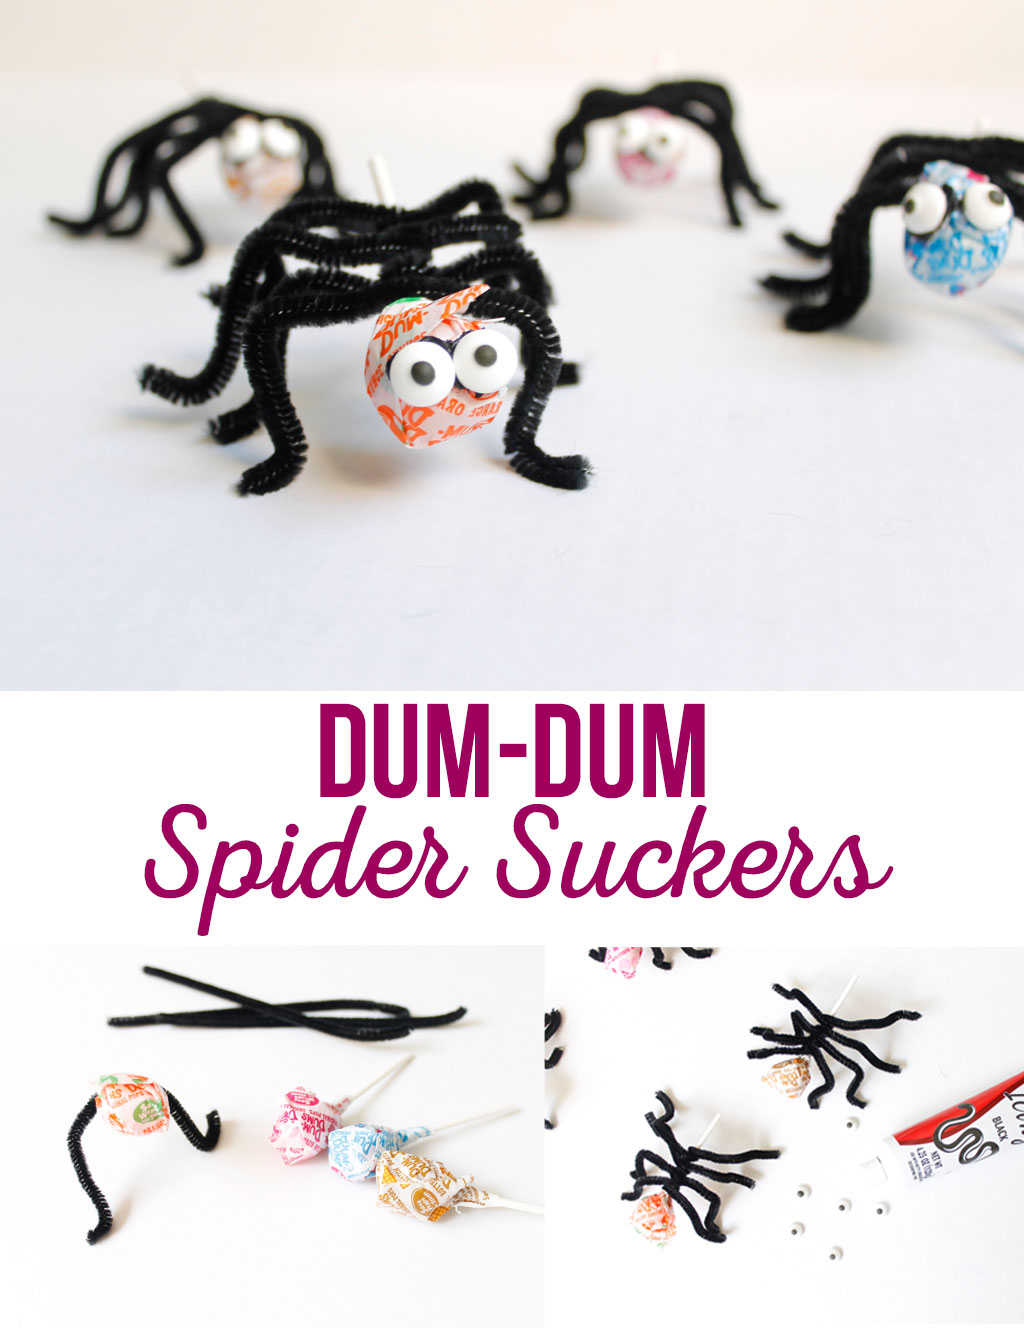 Dum-Dum Spider Suckers are a quick and easy treat for any Halloween party. A fun way clever way to be creative without spending tons of money.